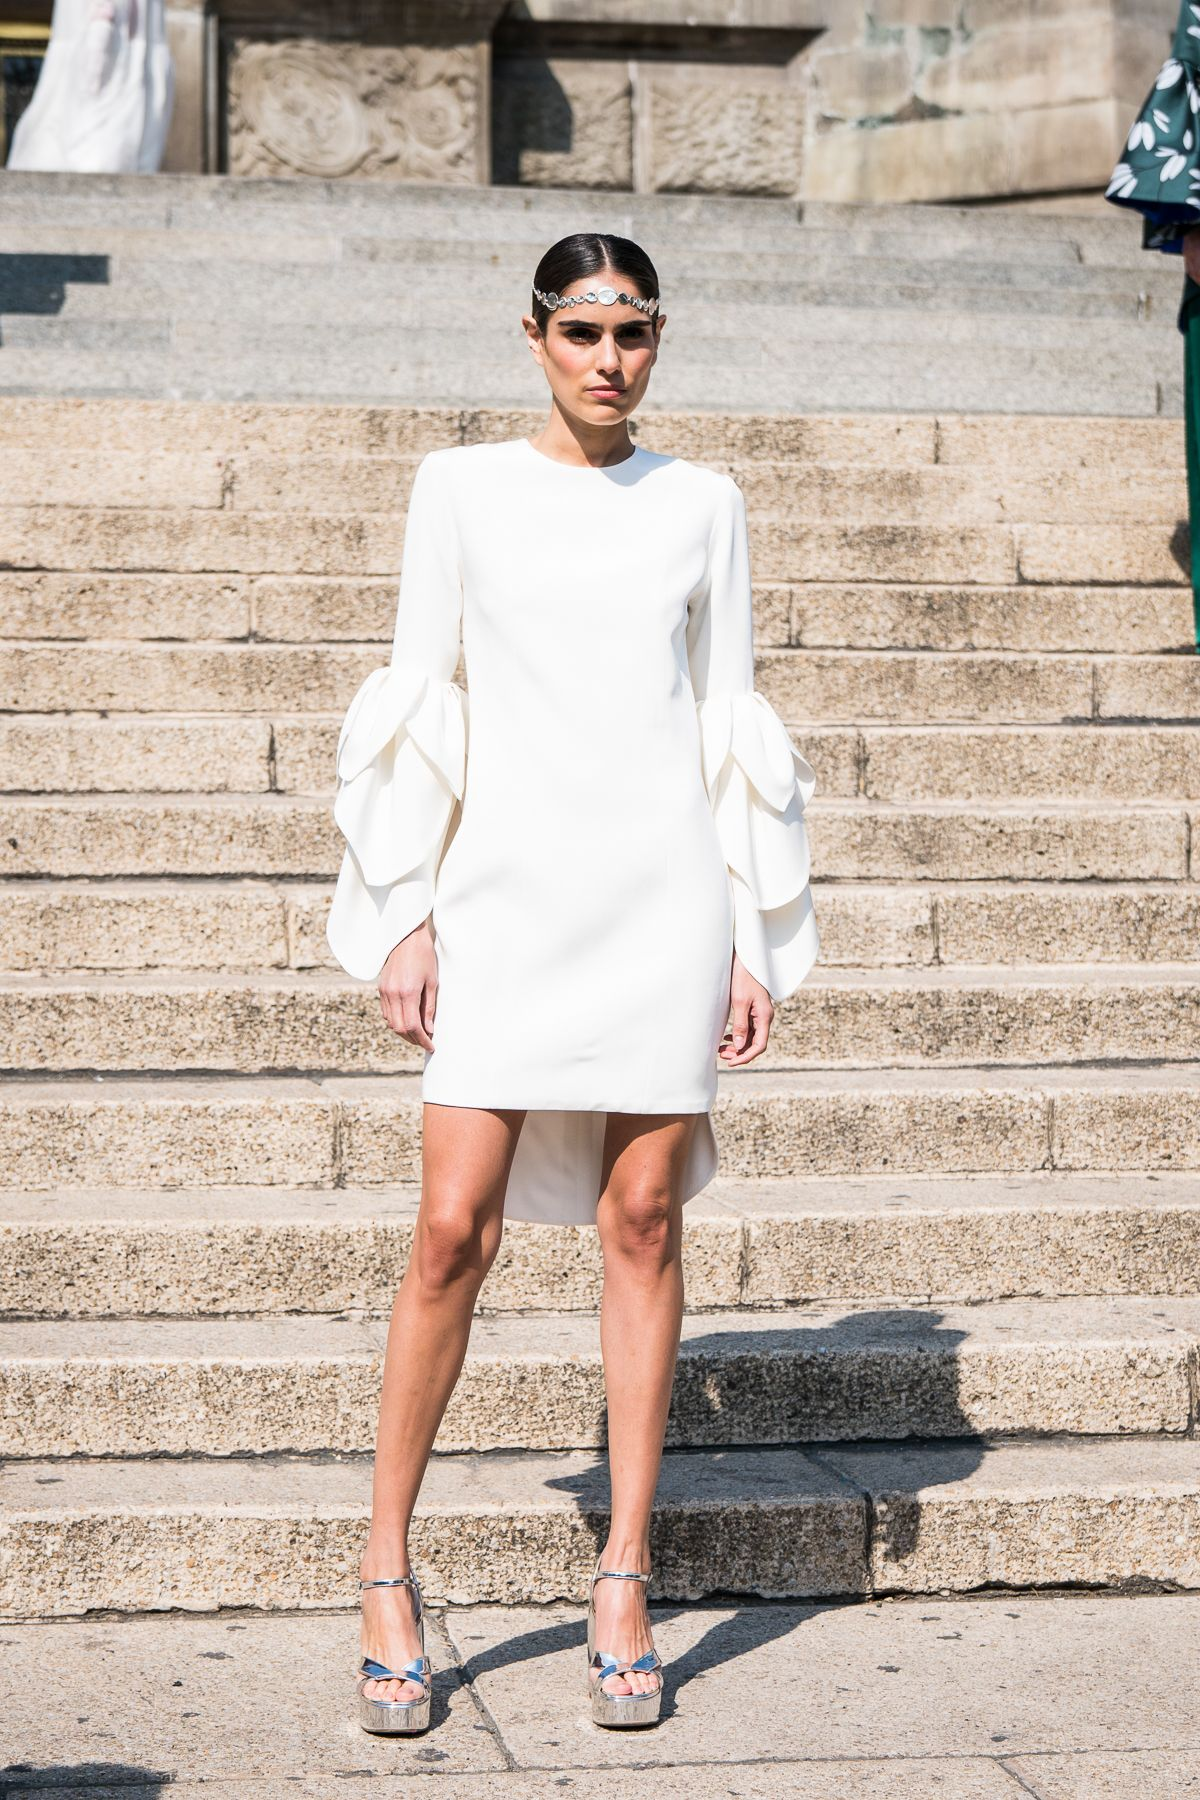 93e9fb05ae83 KRIS GOYRI White Now, Club Outfits, Color Trends, Party Wear, Mexican,